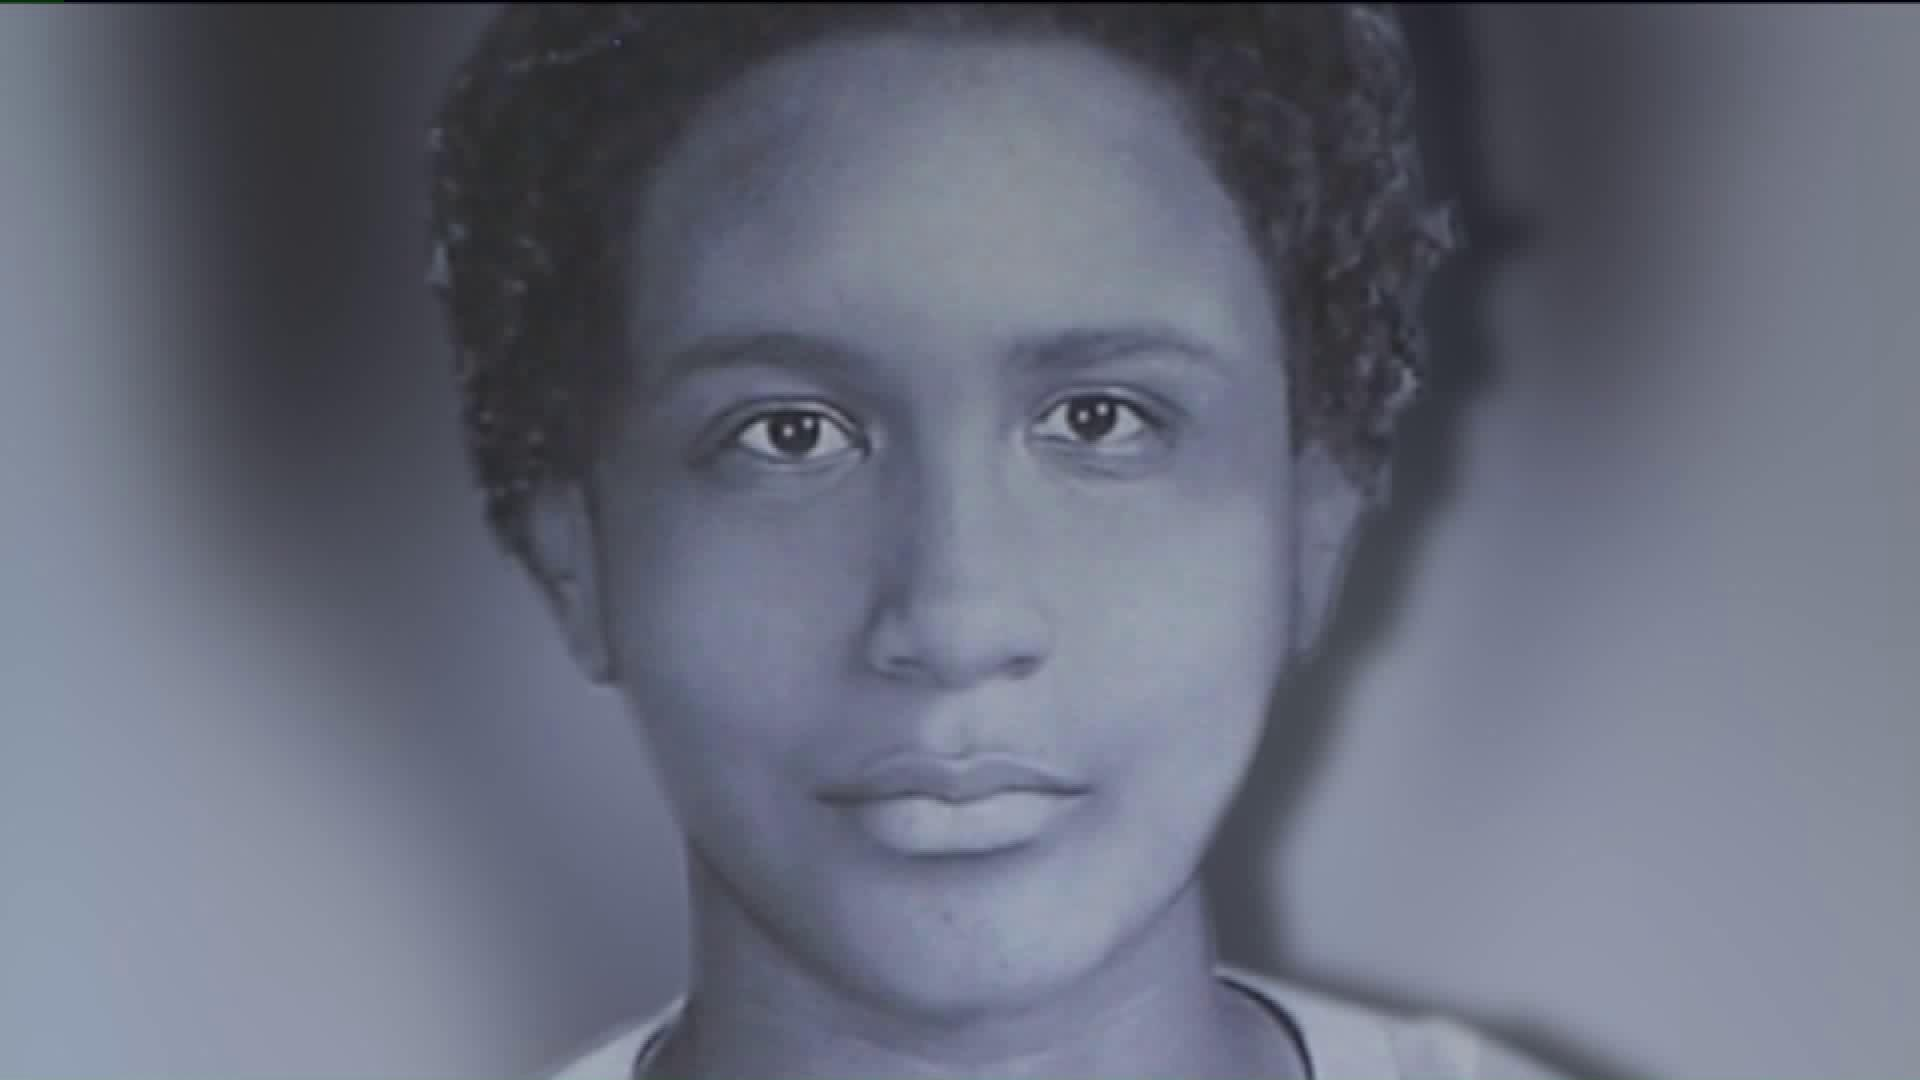 Investigators Reveal Clue That Could Help Solve 1985 Cold Case